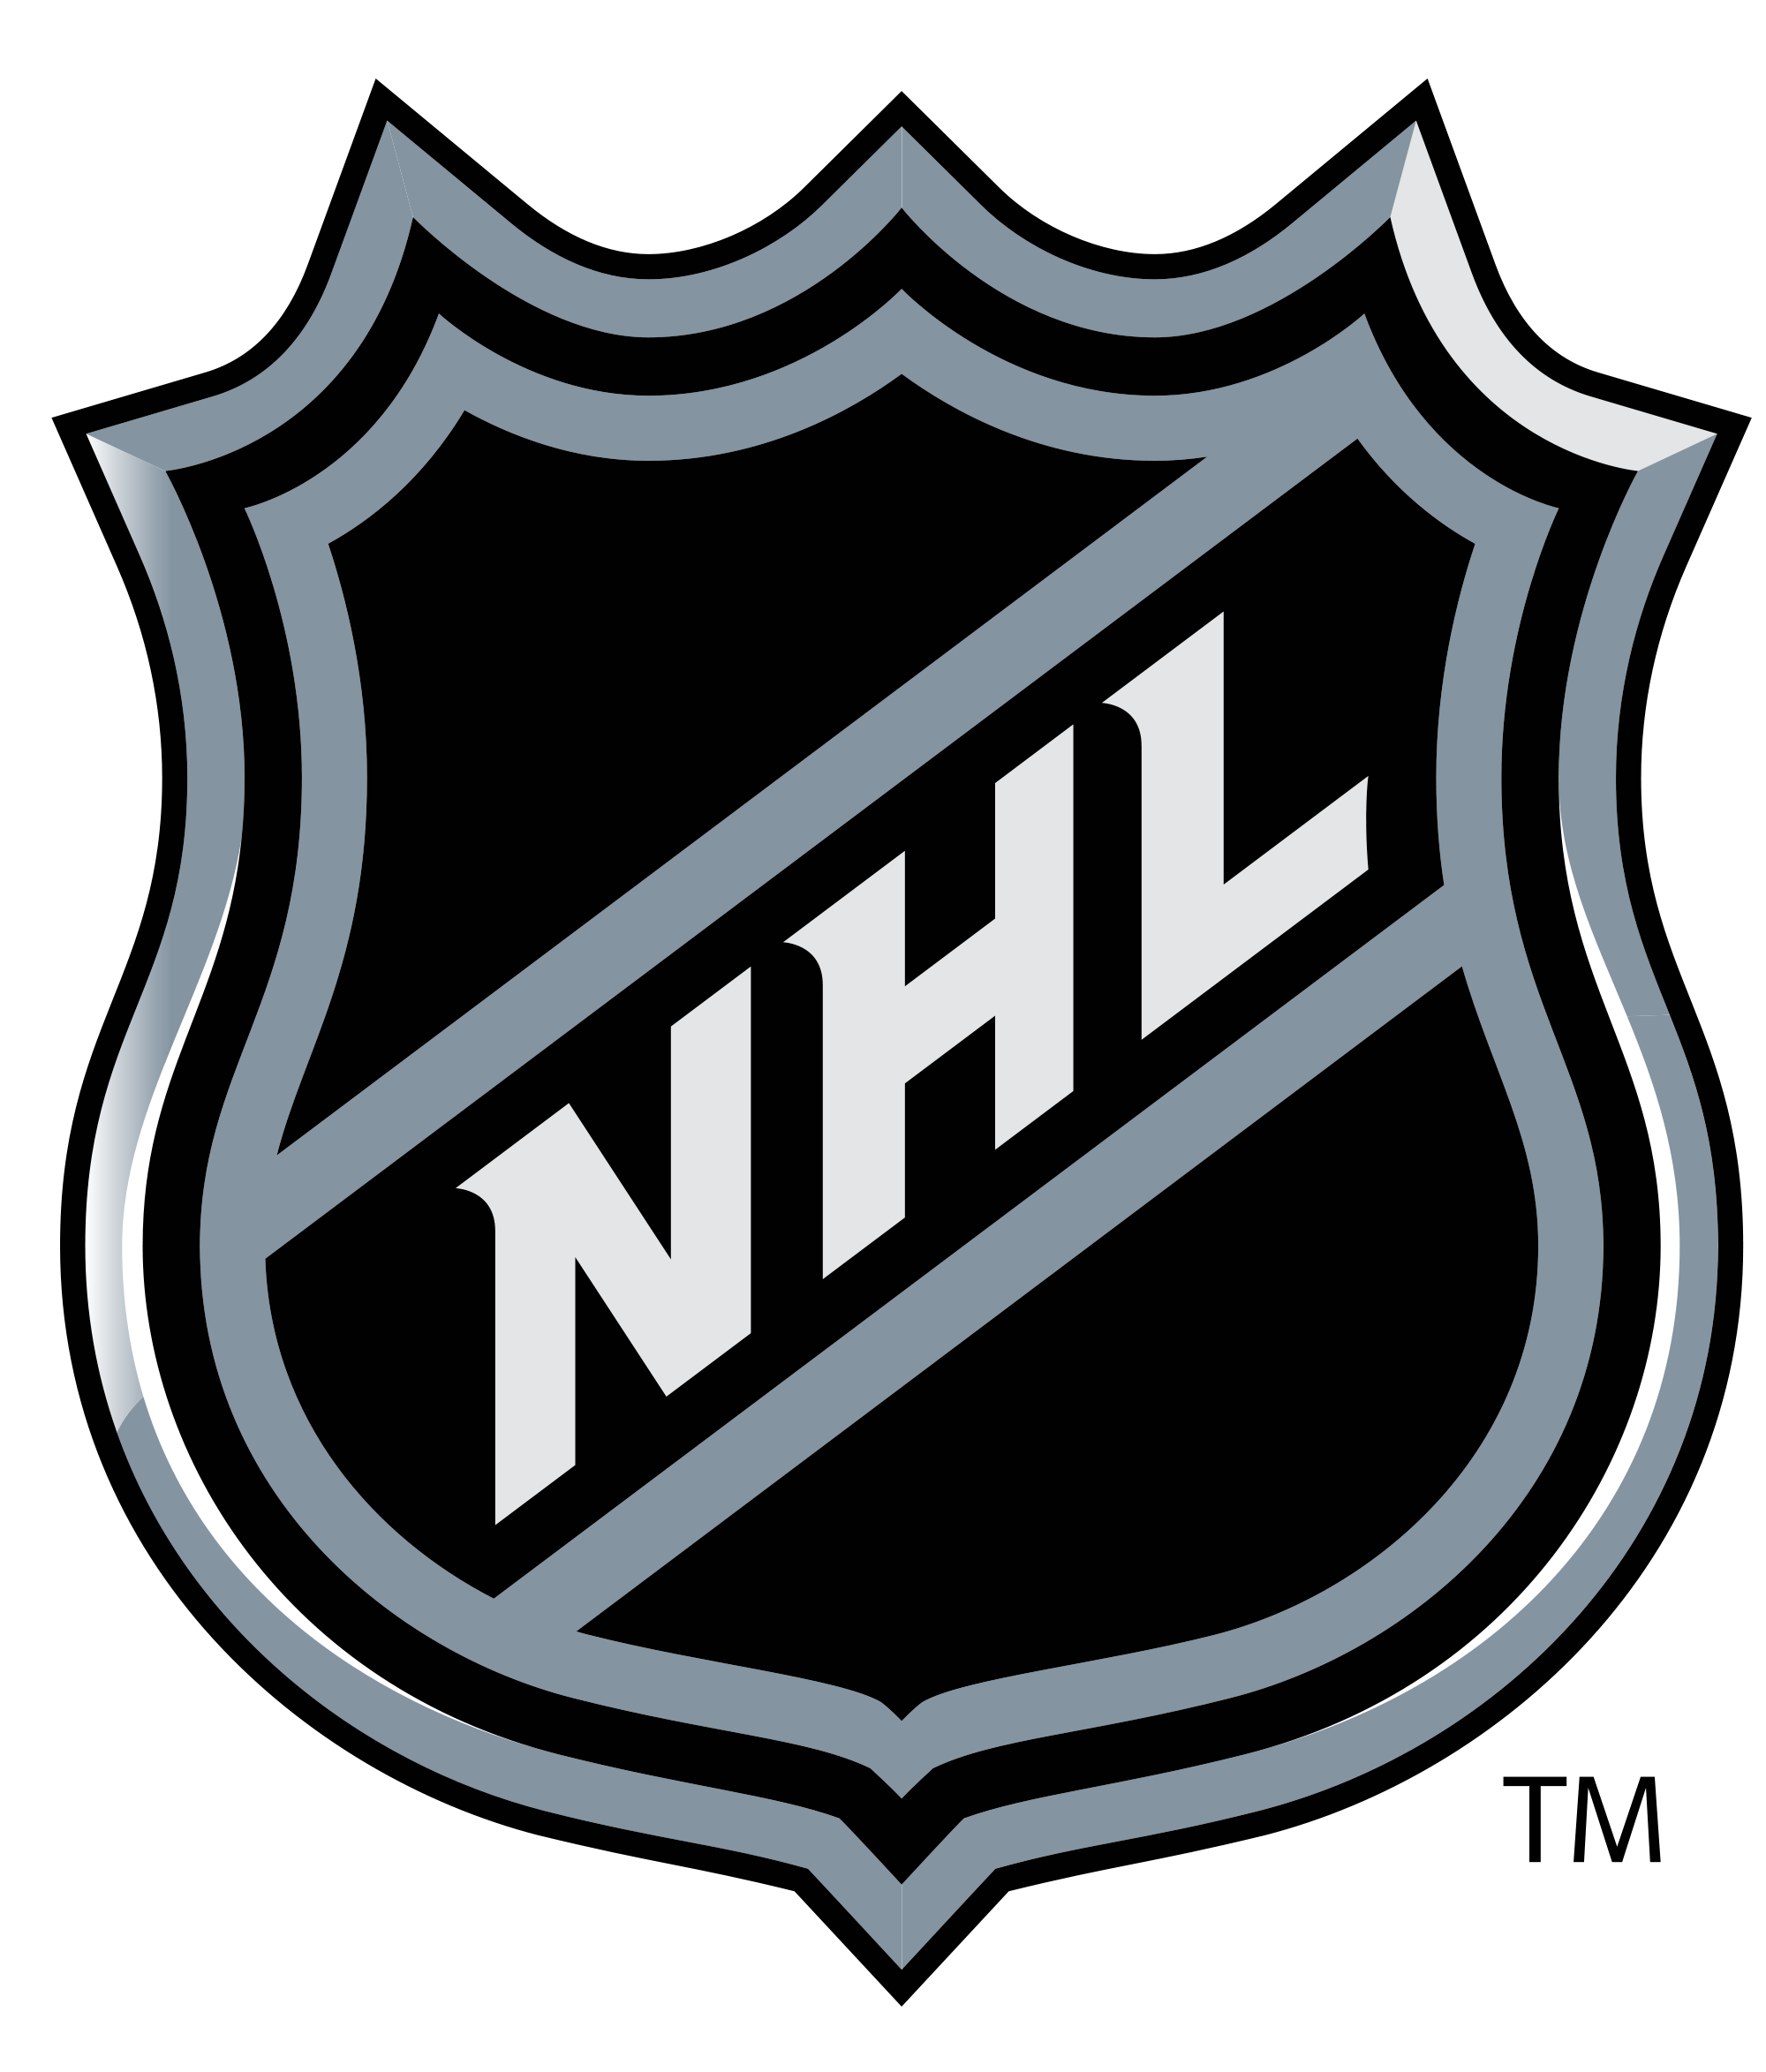 image nhl logopedia the logo and branding site #33669